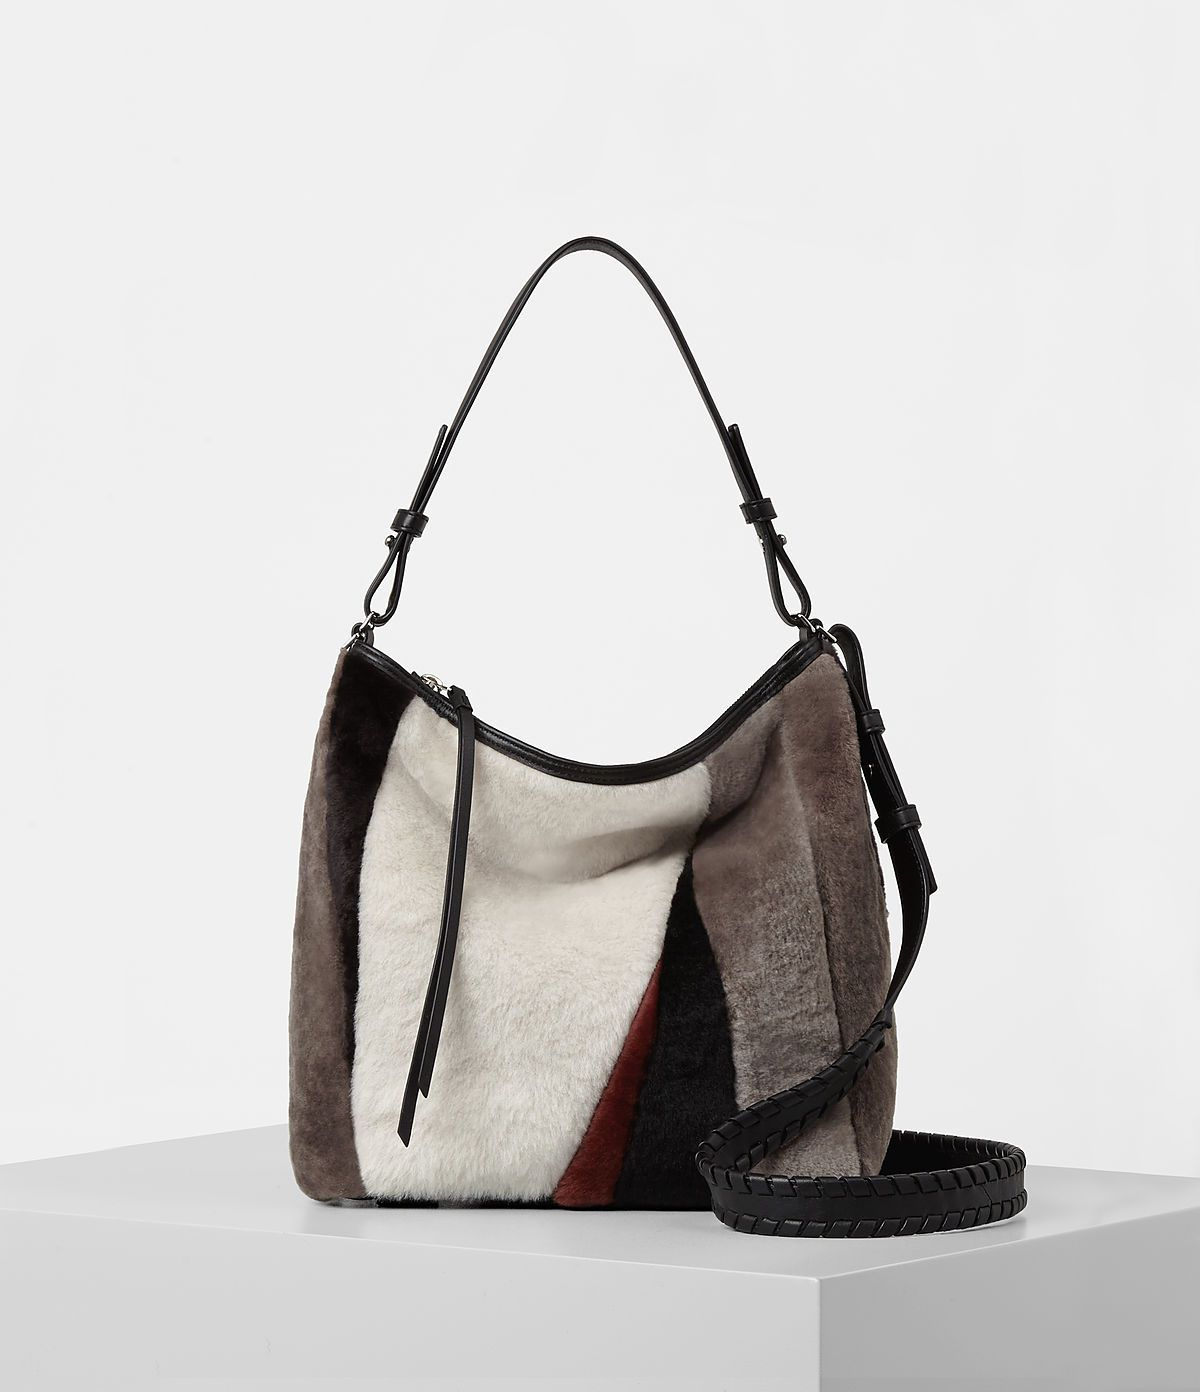 Explore Our Range Of Women S Crossbody Bags The Latest Arrivals With Free Delivery On Uk Orders Over Returns